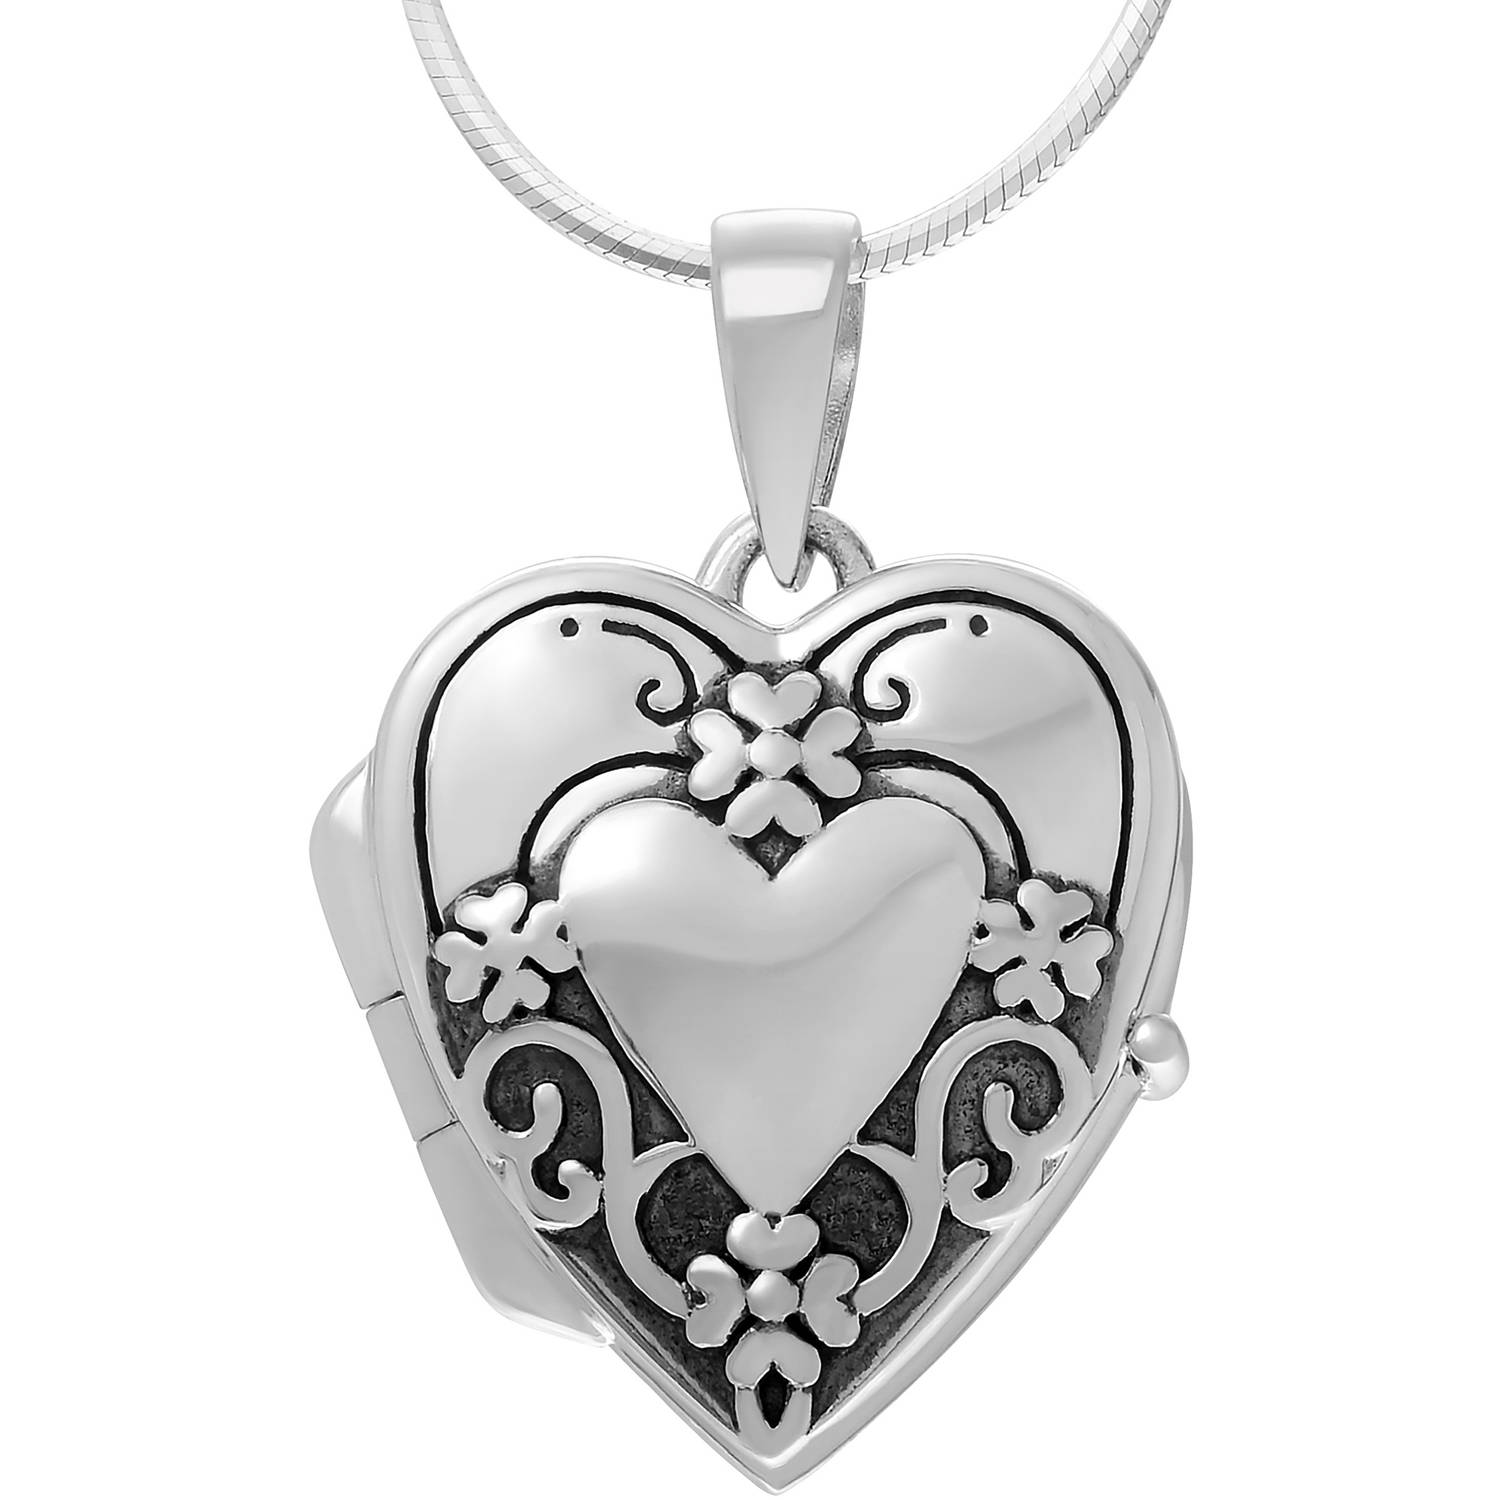 Brinley Co. Women's Sterling Silver Flower and Heart Locket Pendant Fashion Necklace